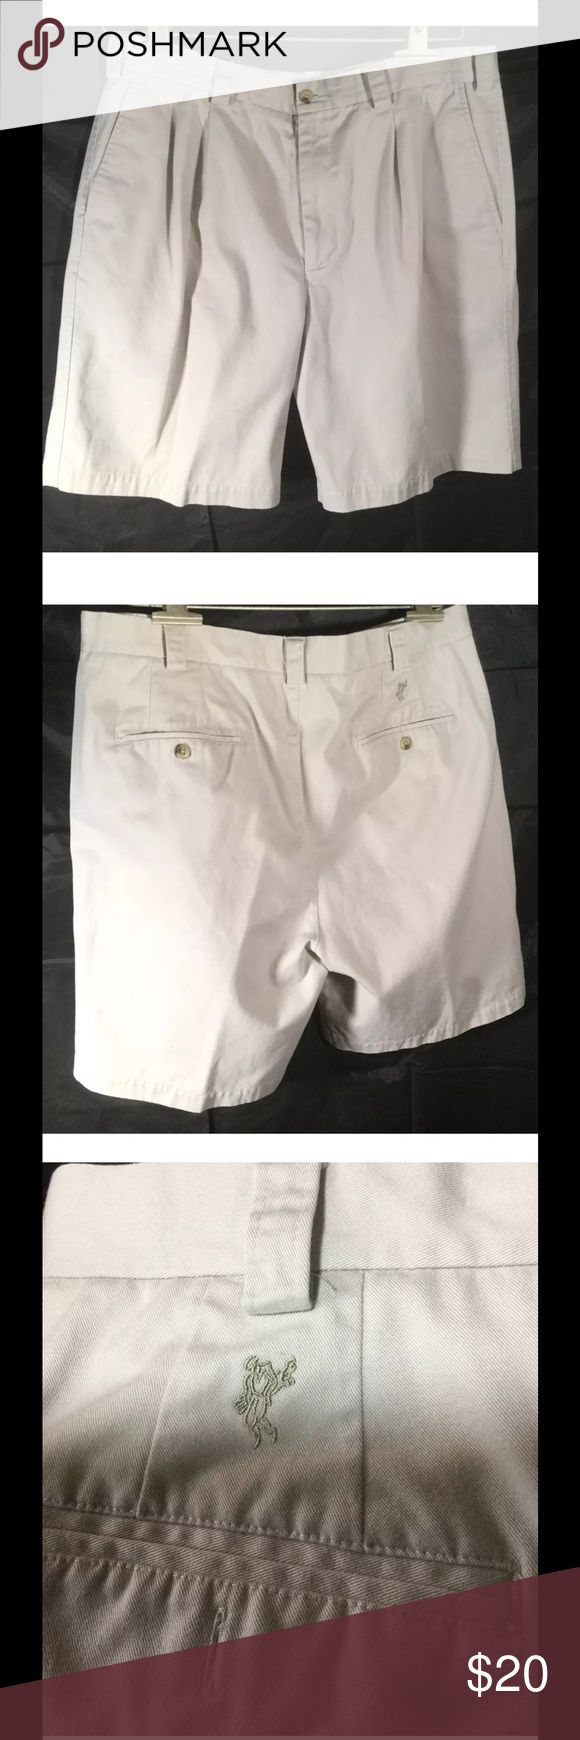 """ASHWORTH MENS CHINO SHORTS 36 waist 21"""" long Very nice men's shorts with no flaws. No missing buttons or rips, holes or tears. No stains. There is an extra button.  Tag size: 36 waist measurement: 18"""" (36"""") total length: 21"""" (from top of waist to bottom of hem) leg opening: aprox. 13""""  freshly laundered fast shipping Shorts Flat Front"""